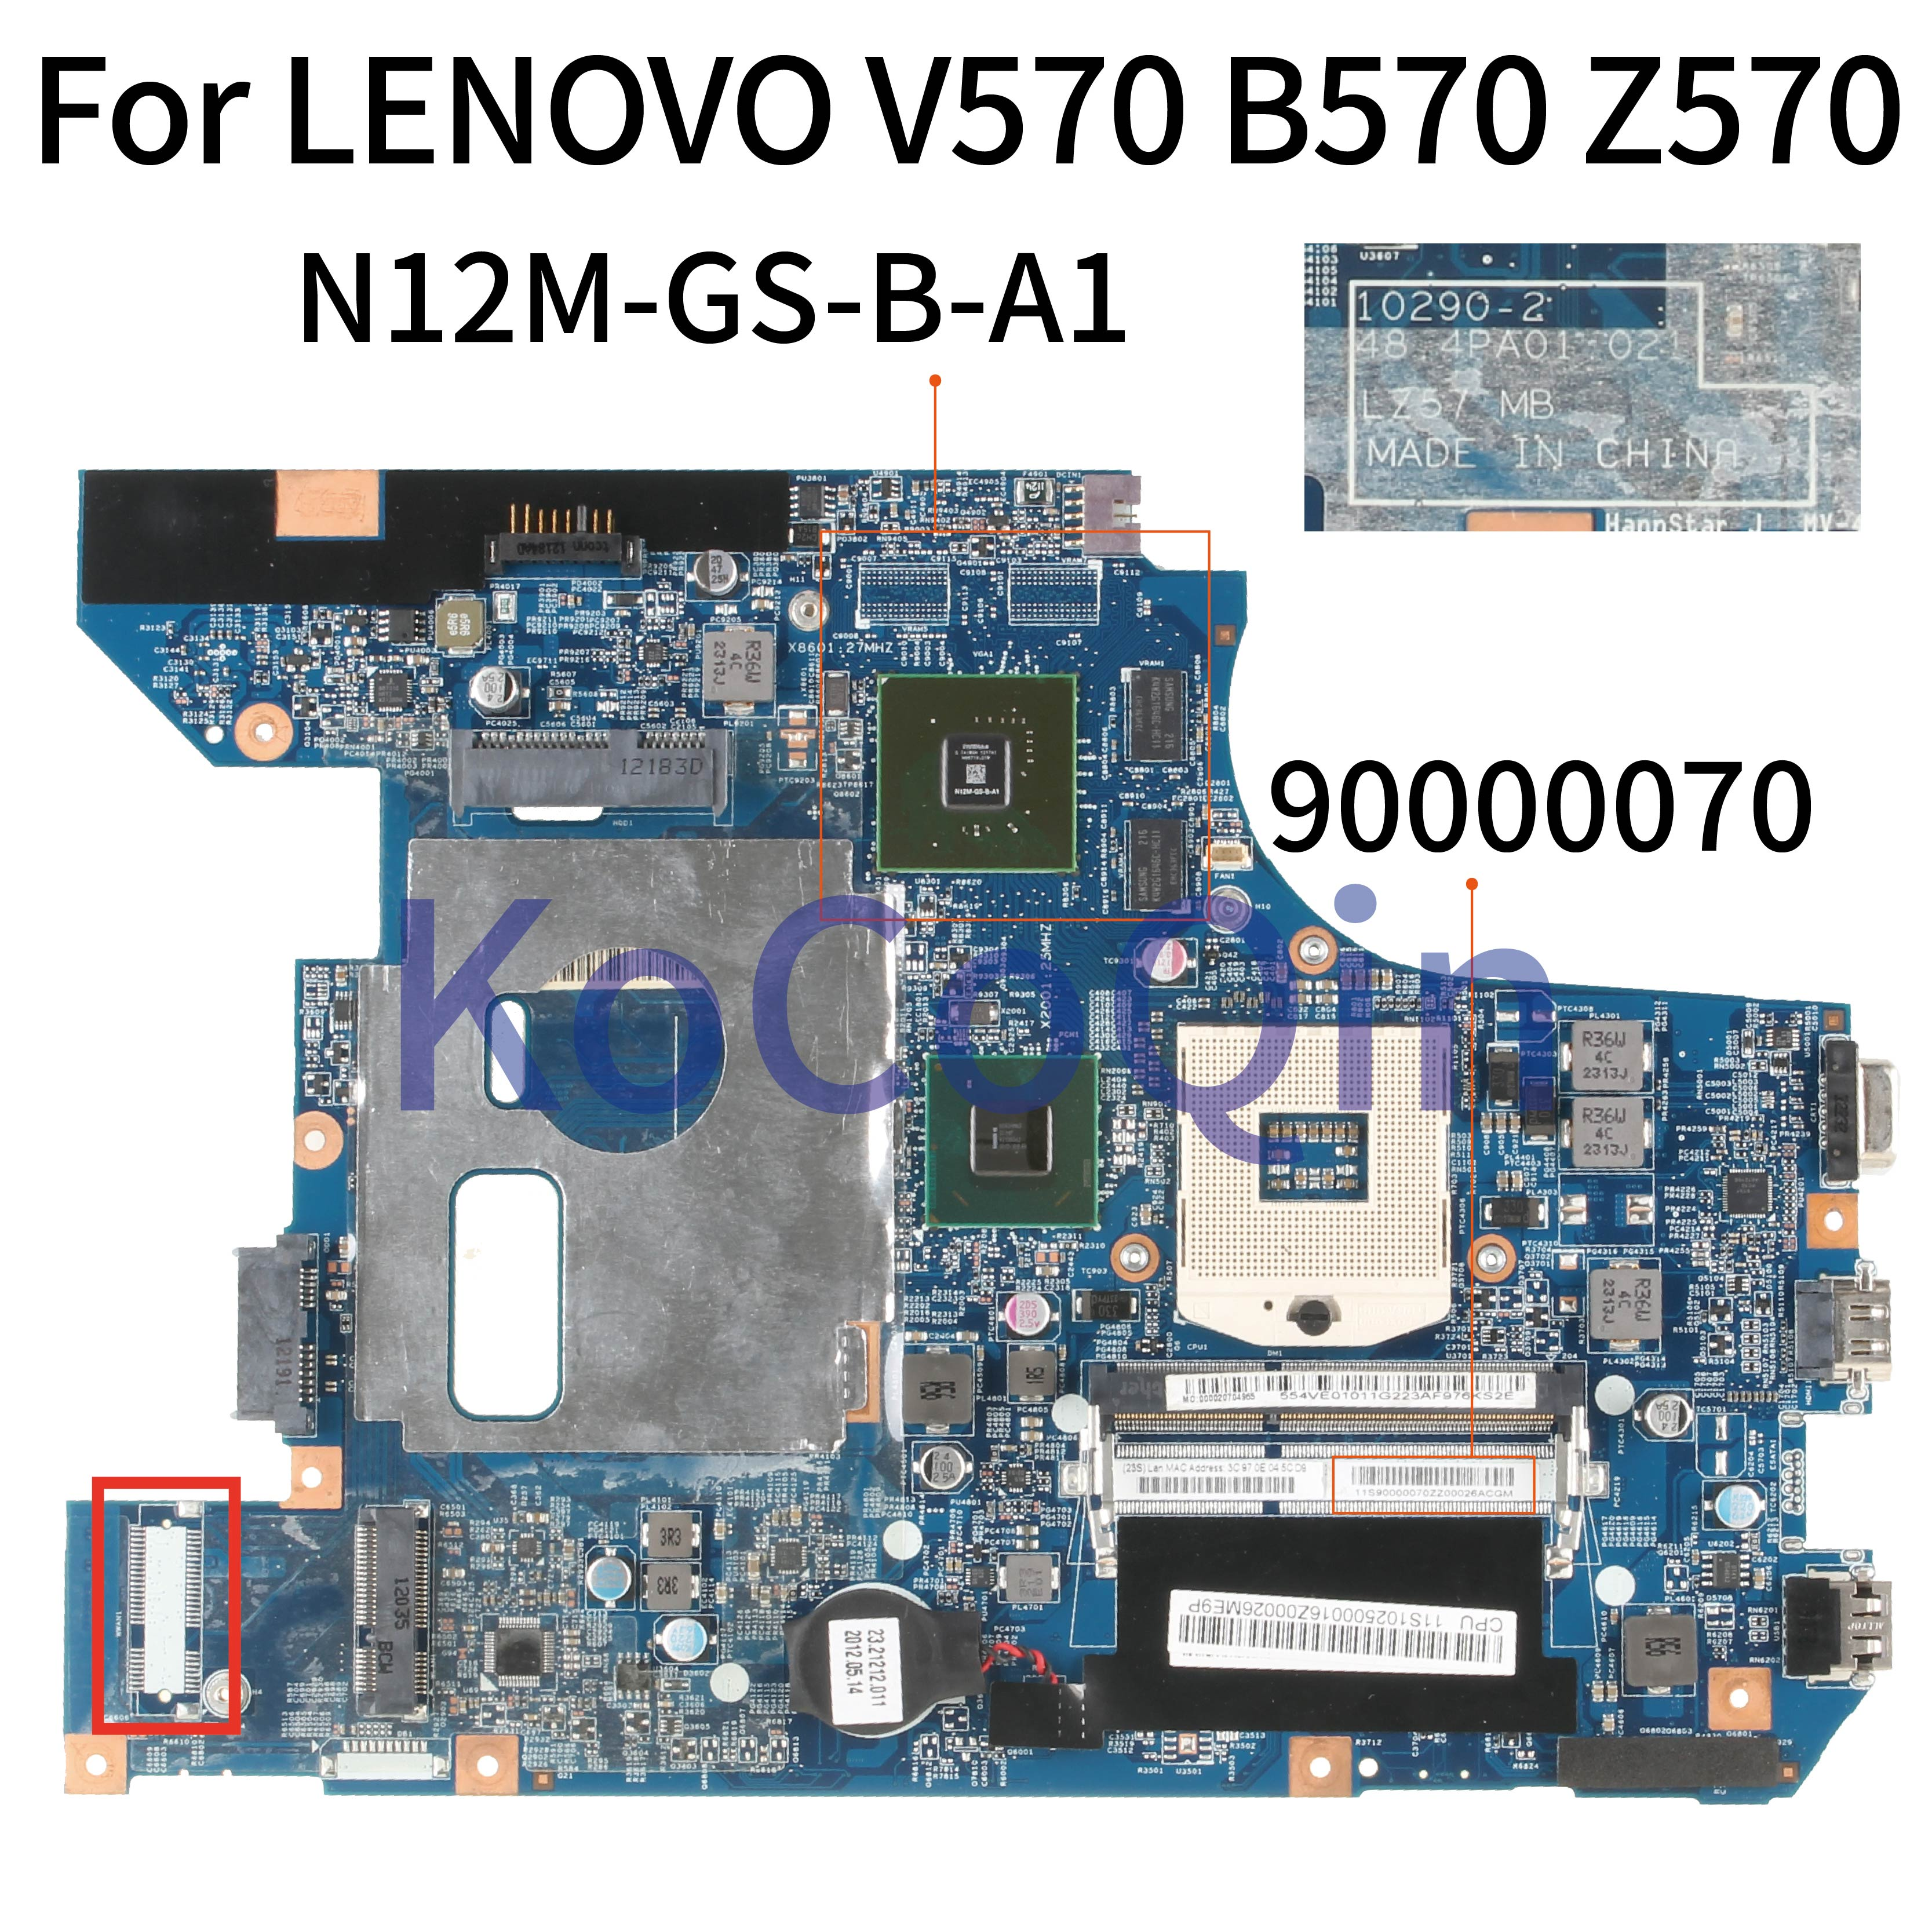 KoCoQin Laptop <font><b>motherboard</b></font> For <font><b>LENOVO</b></font> B570 <font><b>B570E</b></font> HM65 Mainboard 90000070 10290-2 48.4PA01.021 LZ57 N12M-GS-B-A1 image